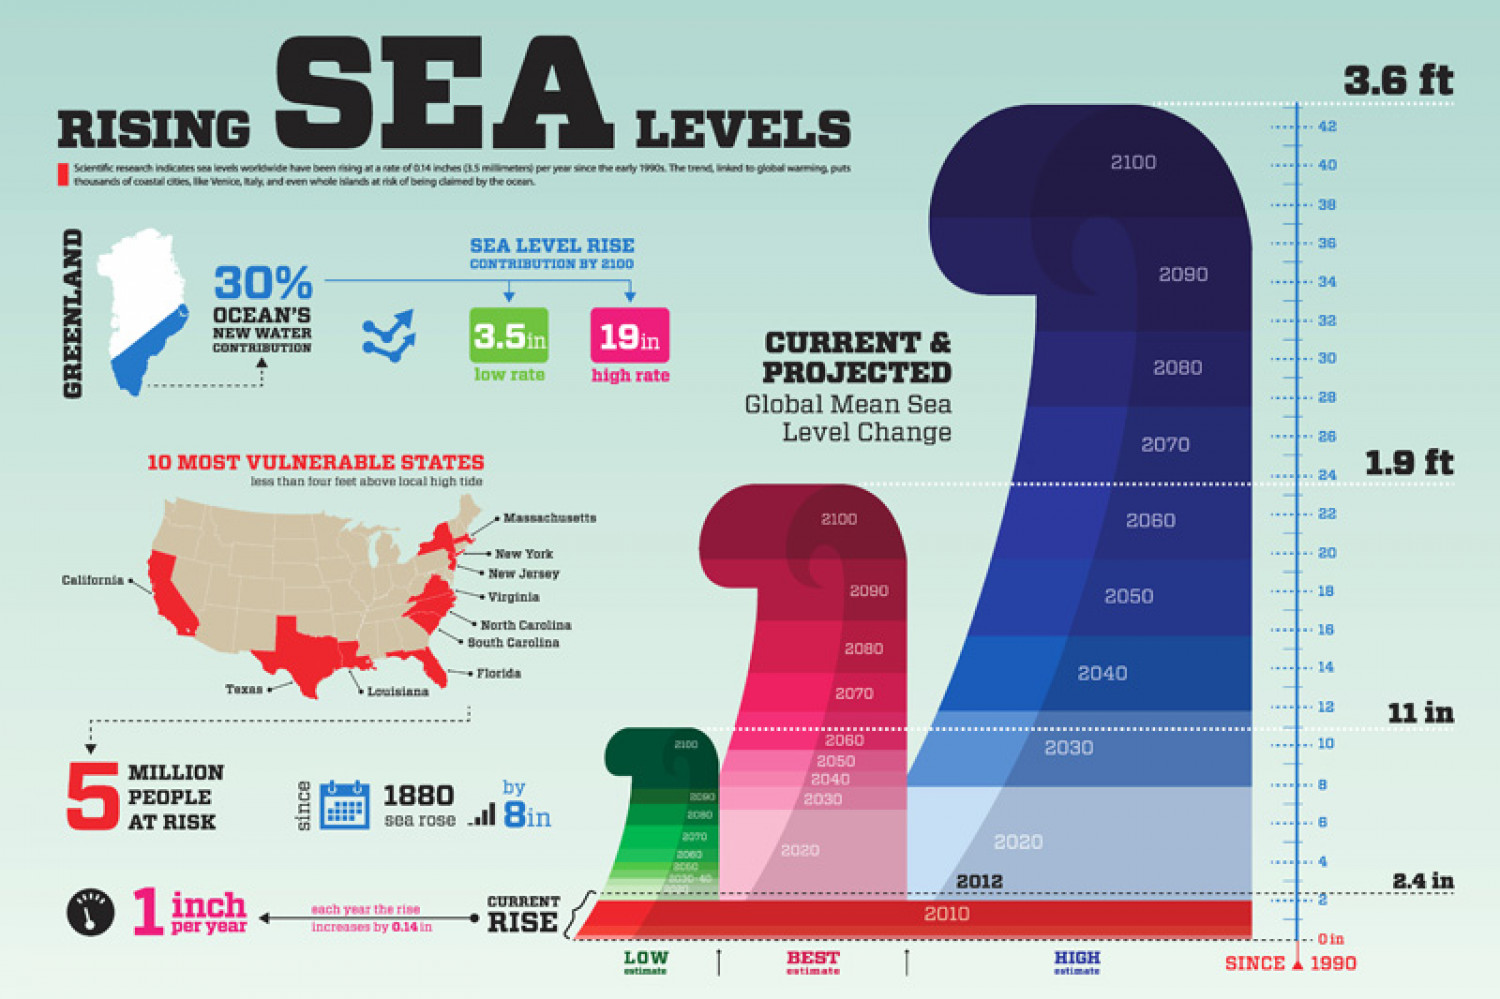 Rising Sea Levels Infographic